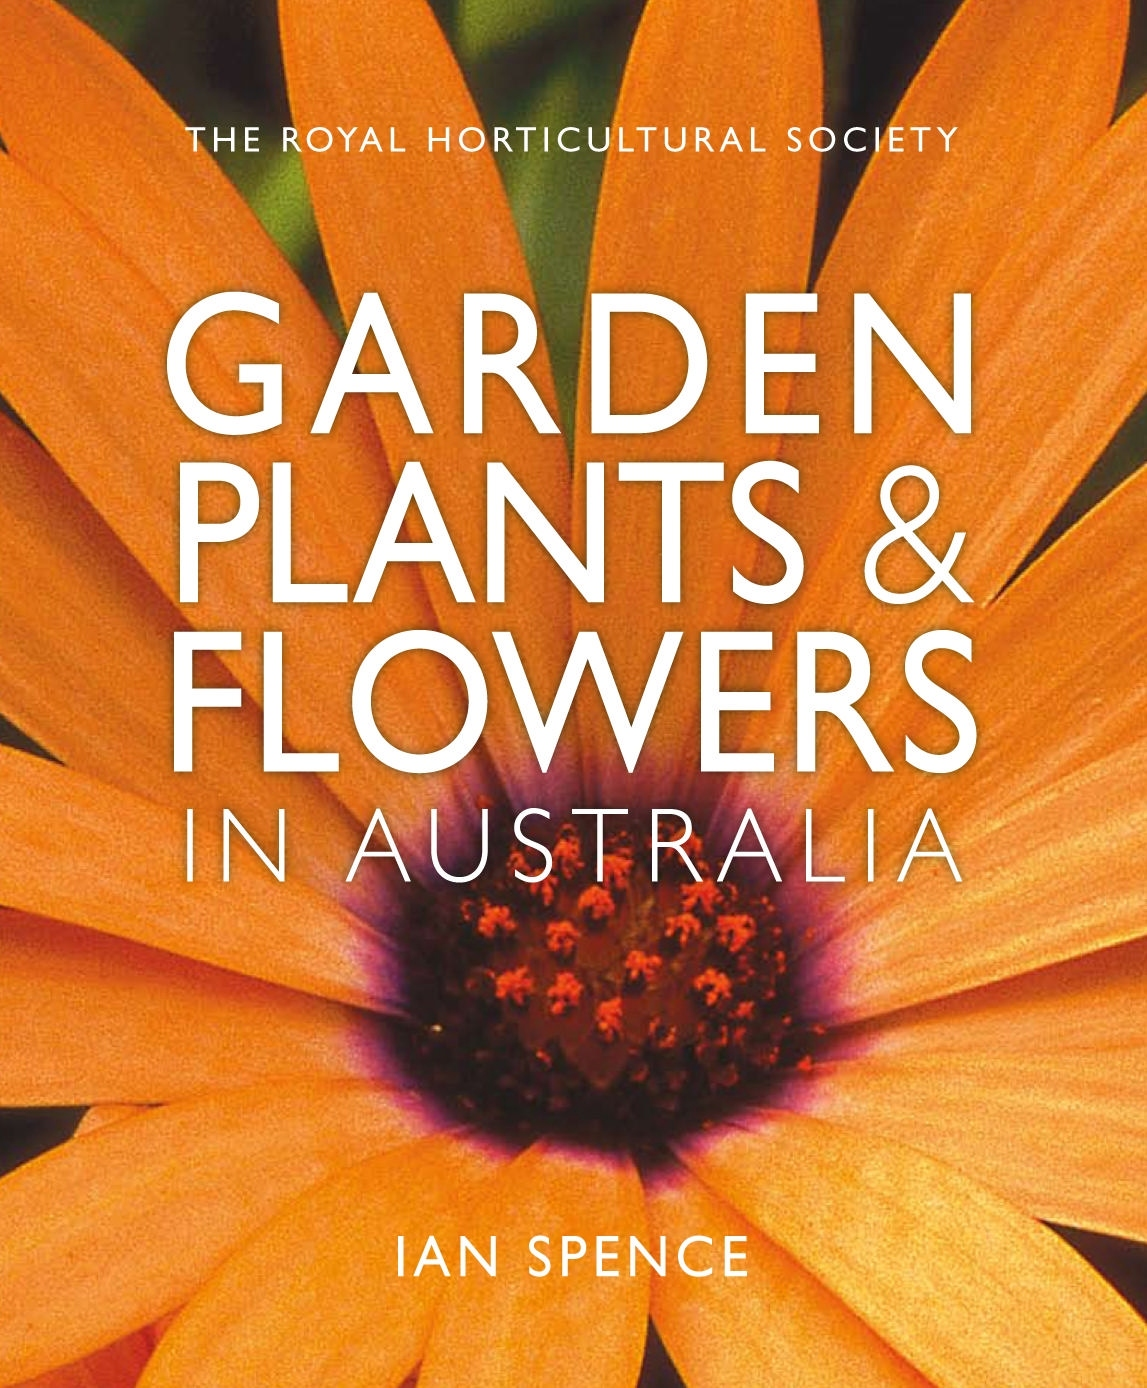 The Royal Horticultural Society: Garden Plants and Flowers in Australia